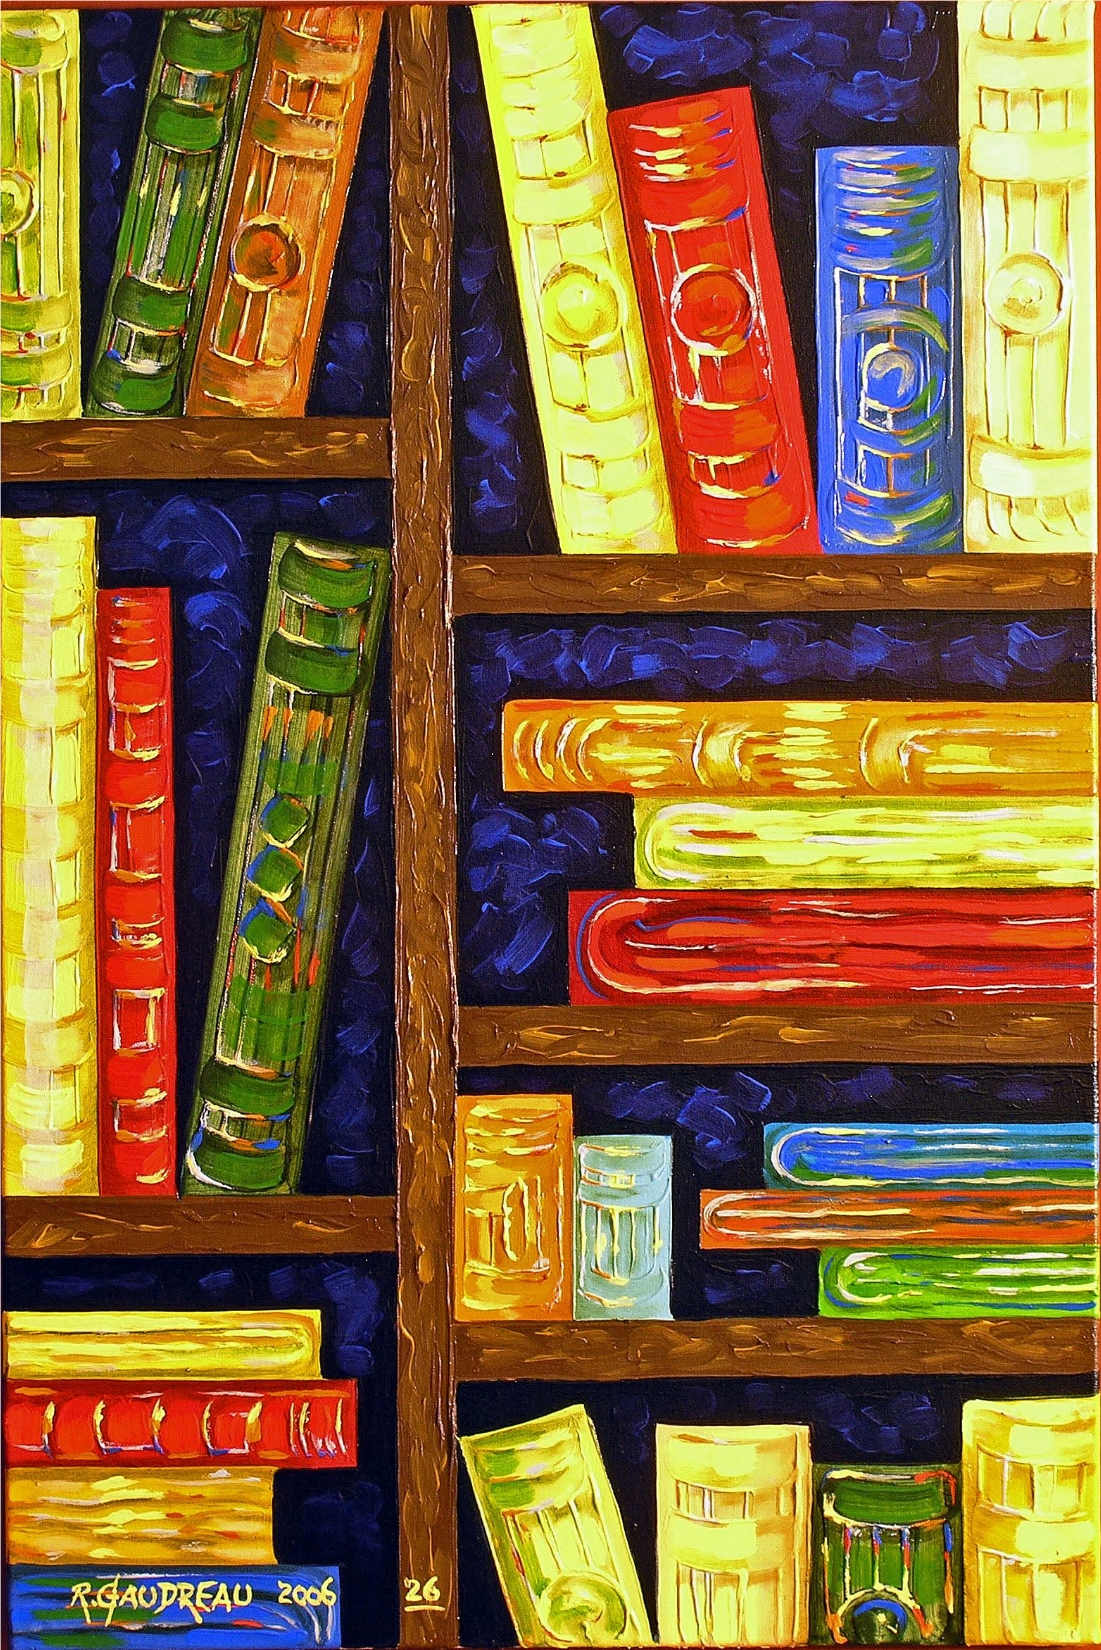 26  Books 2006 oil on canvas 36 x 24 inches